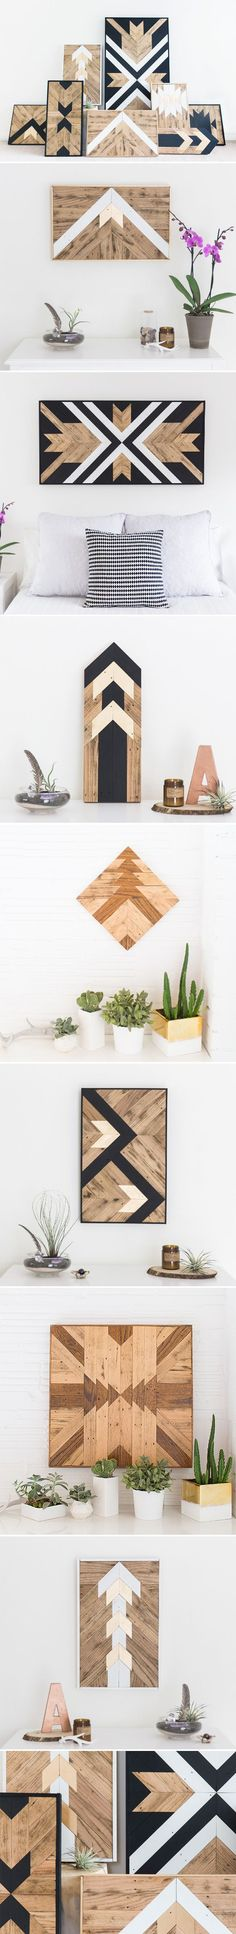 reclaimed wood (from an old oak floor in houston!) art pieces by bri land